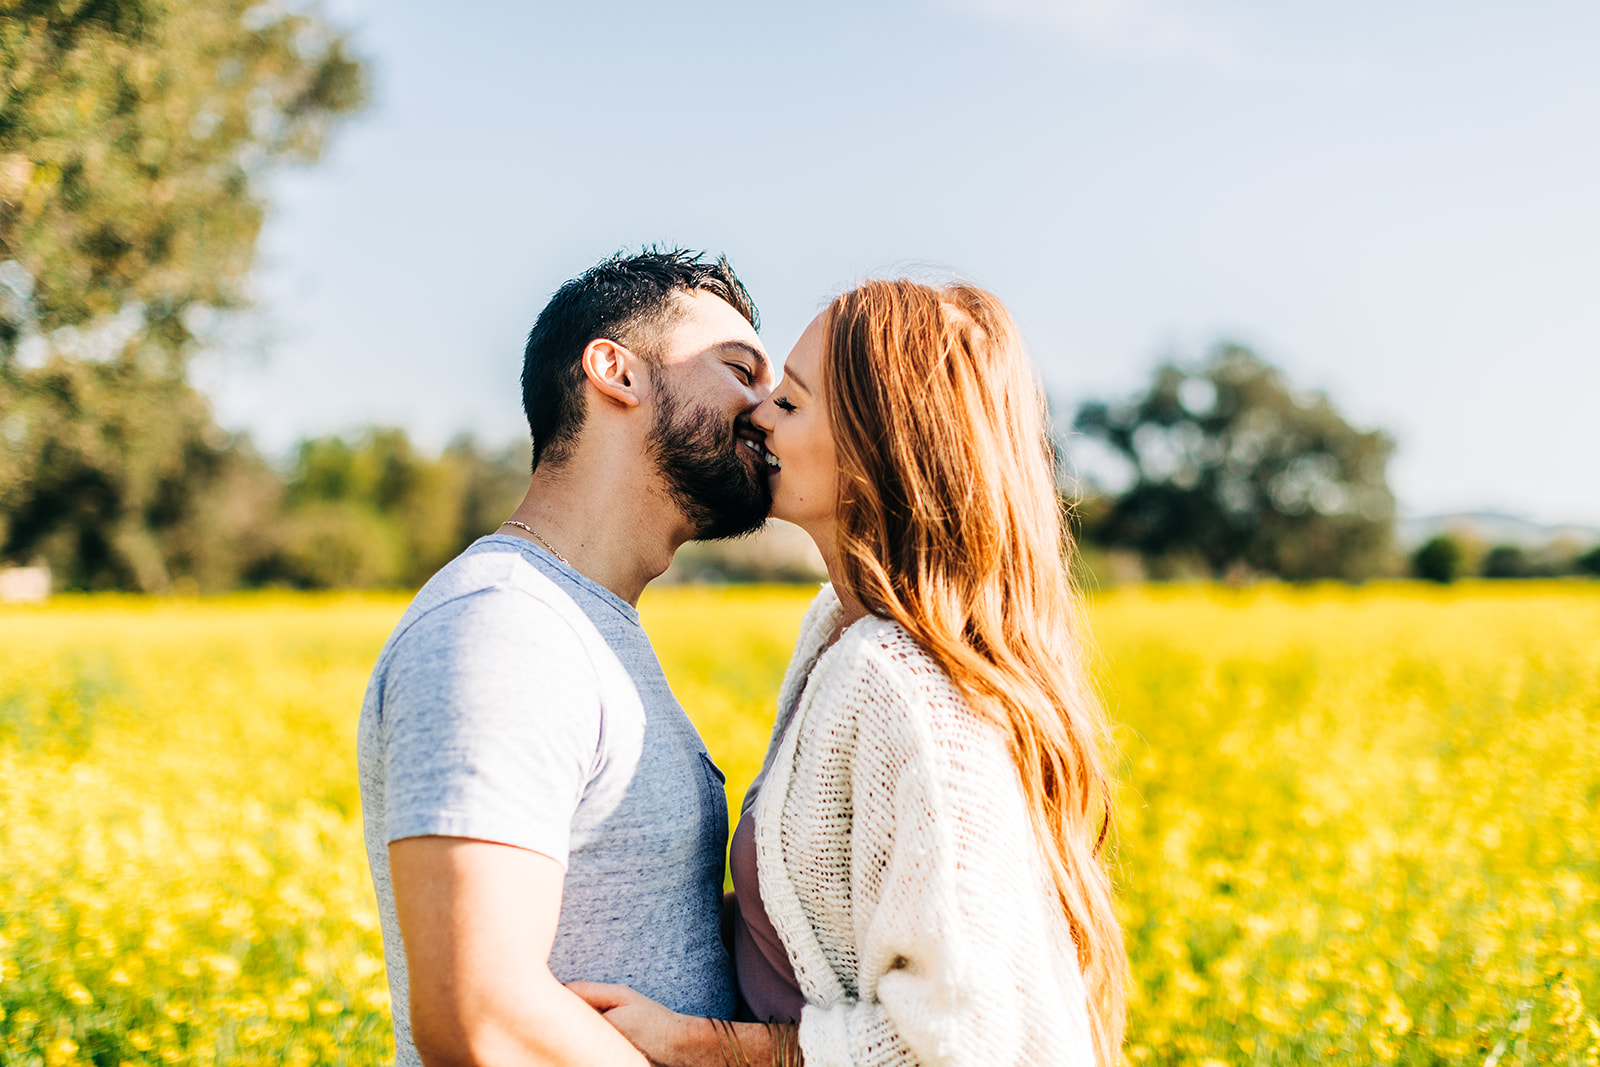 Katie-Yovin_Richard_Superbloom-Engagement-Photos_Clarisse-Rae_Southern-California-Wedding-Photographer-Orange-County-Engagement-Photos-2